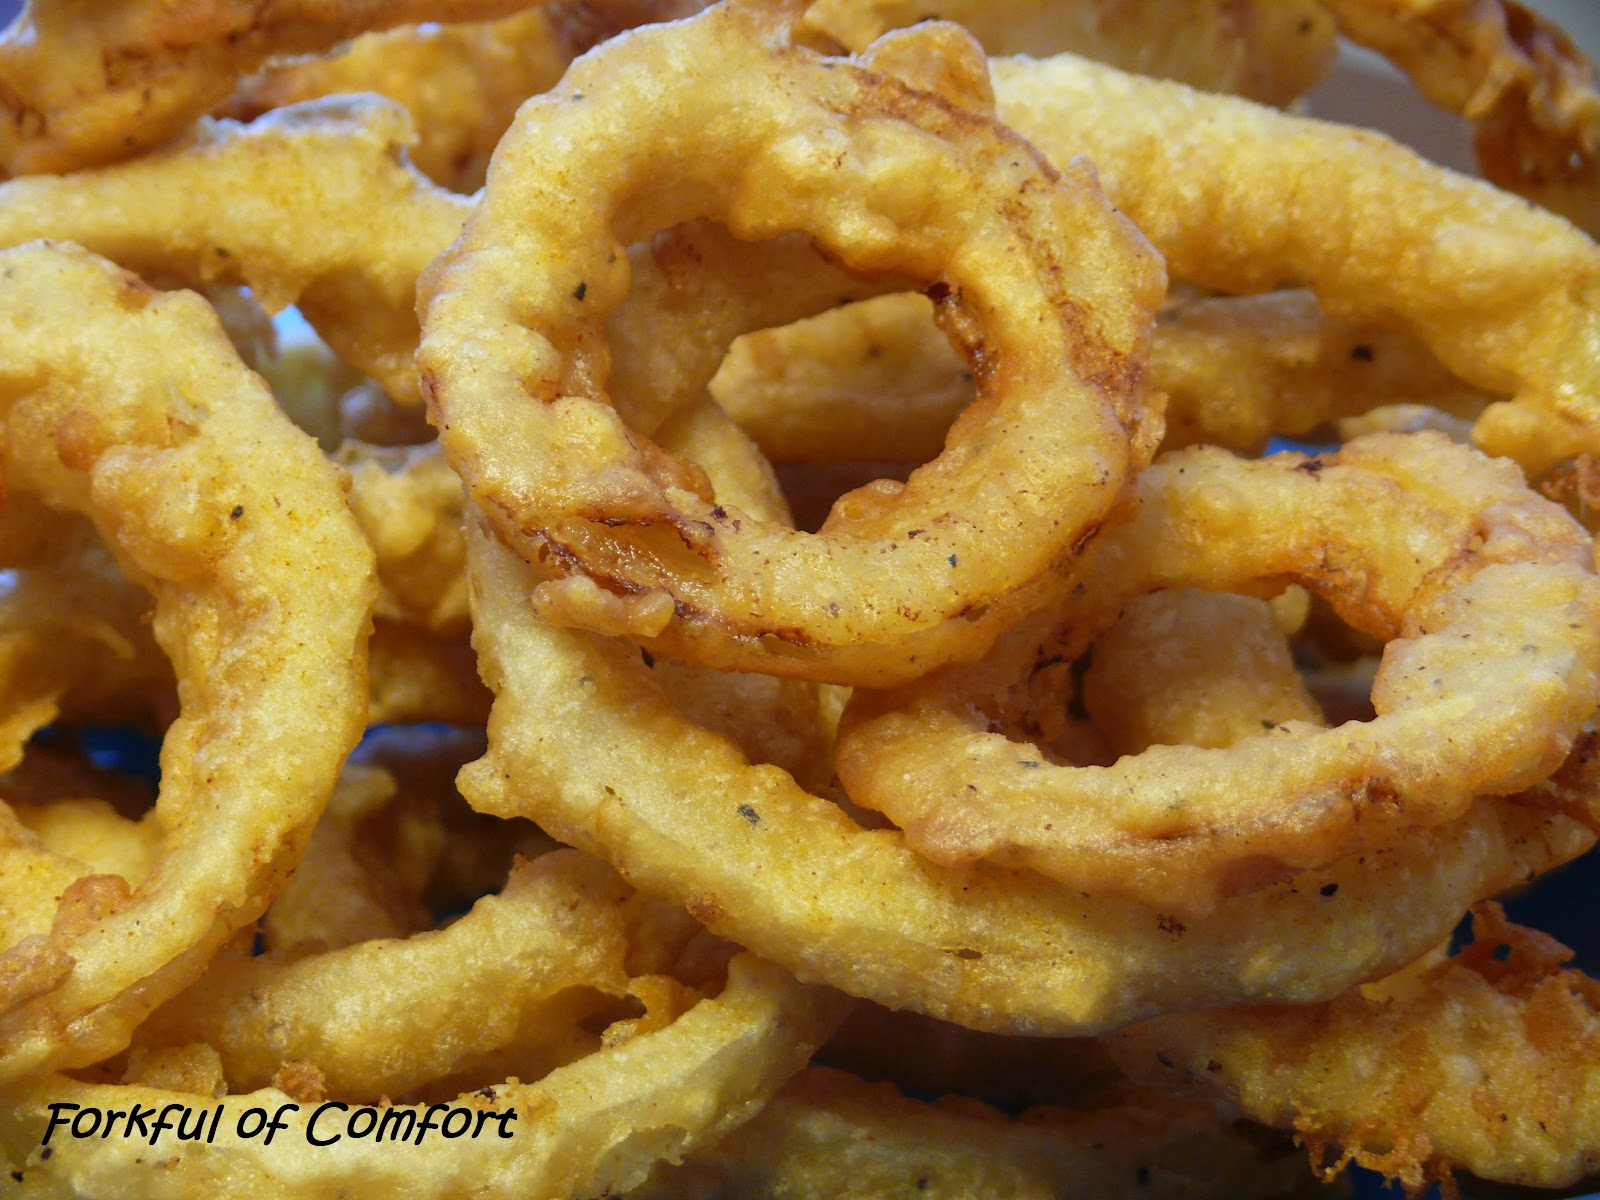 Forkful of Comfort: Beer Battered Onion Rings